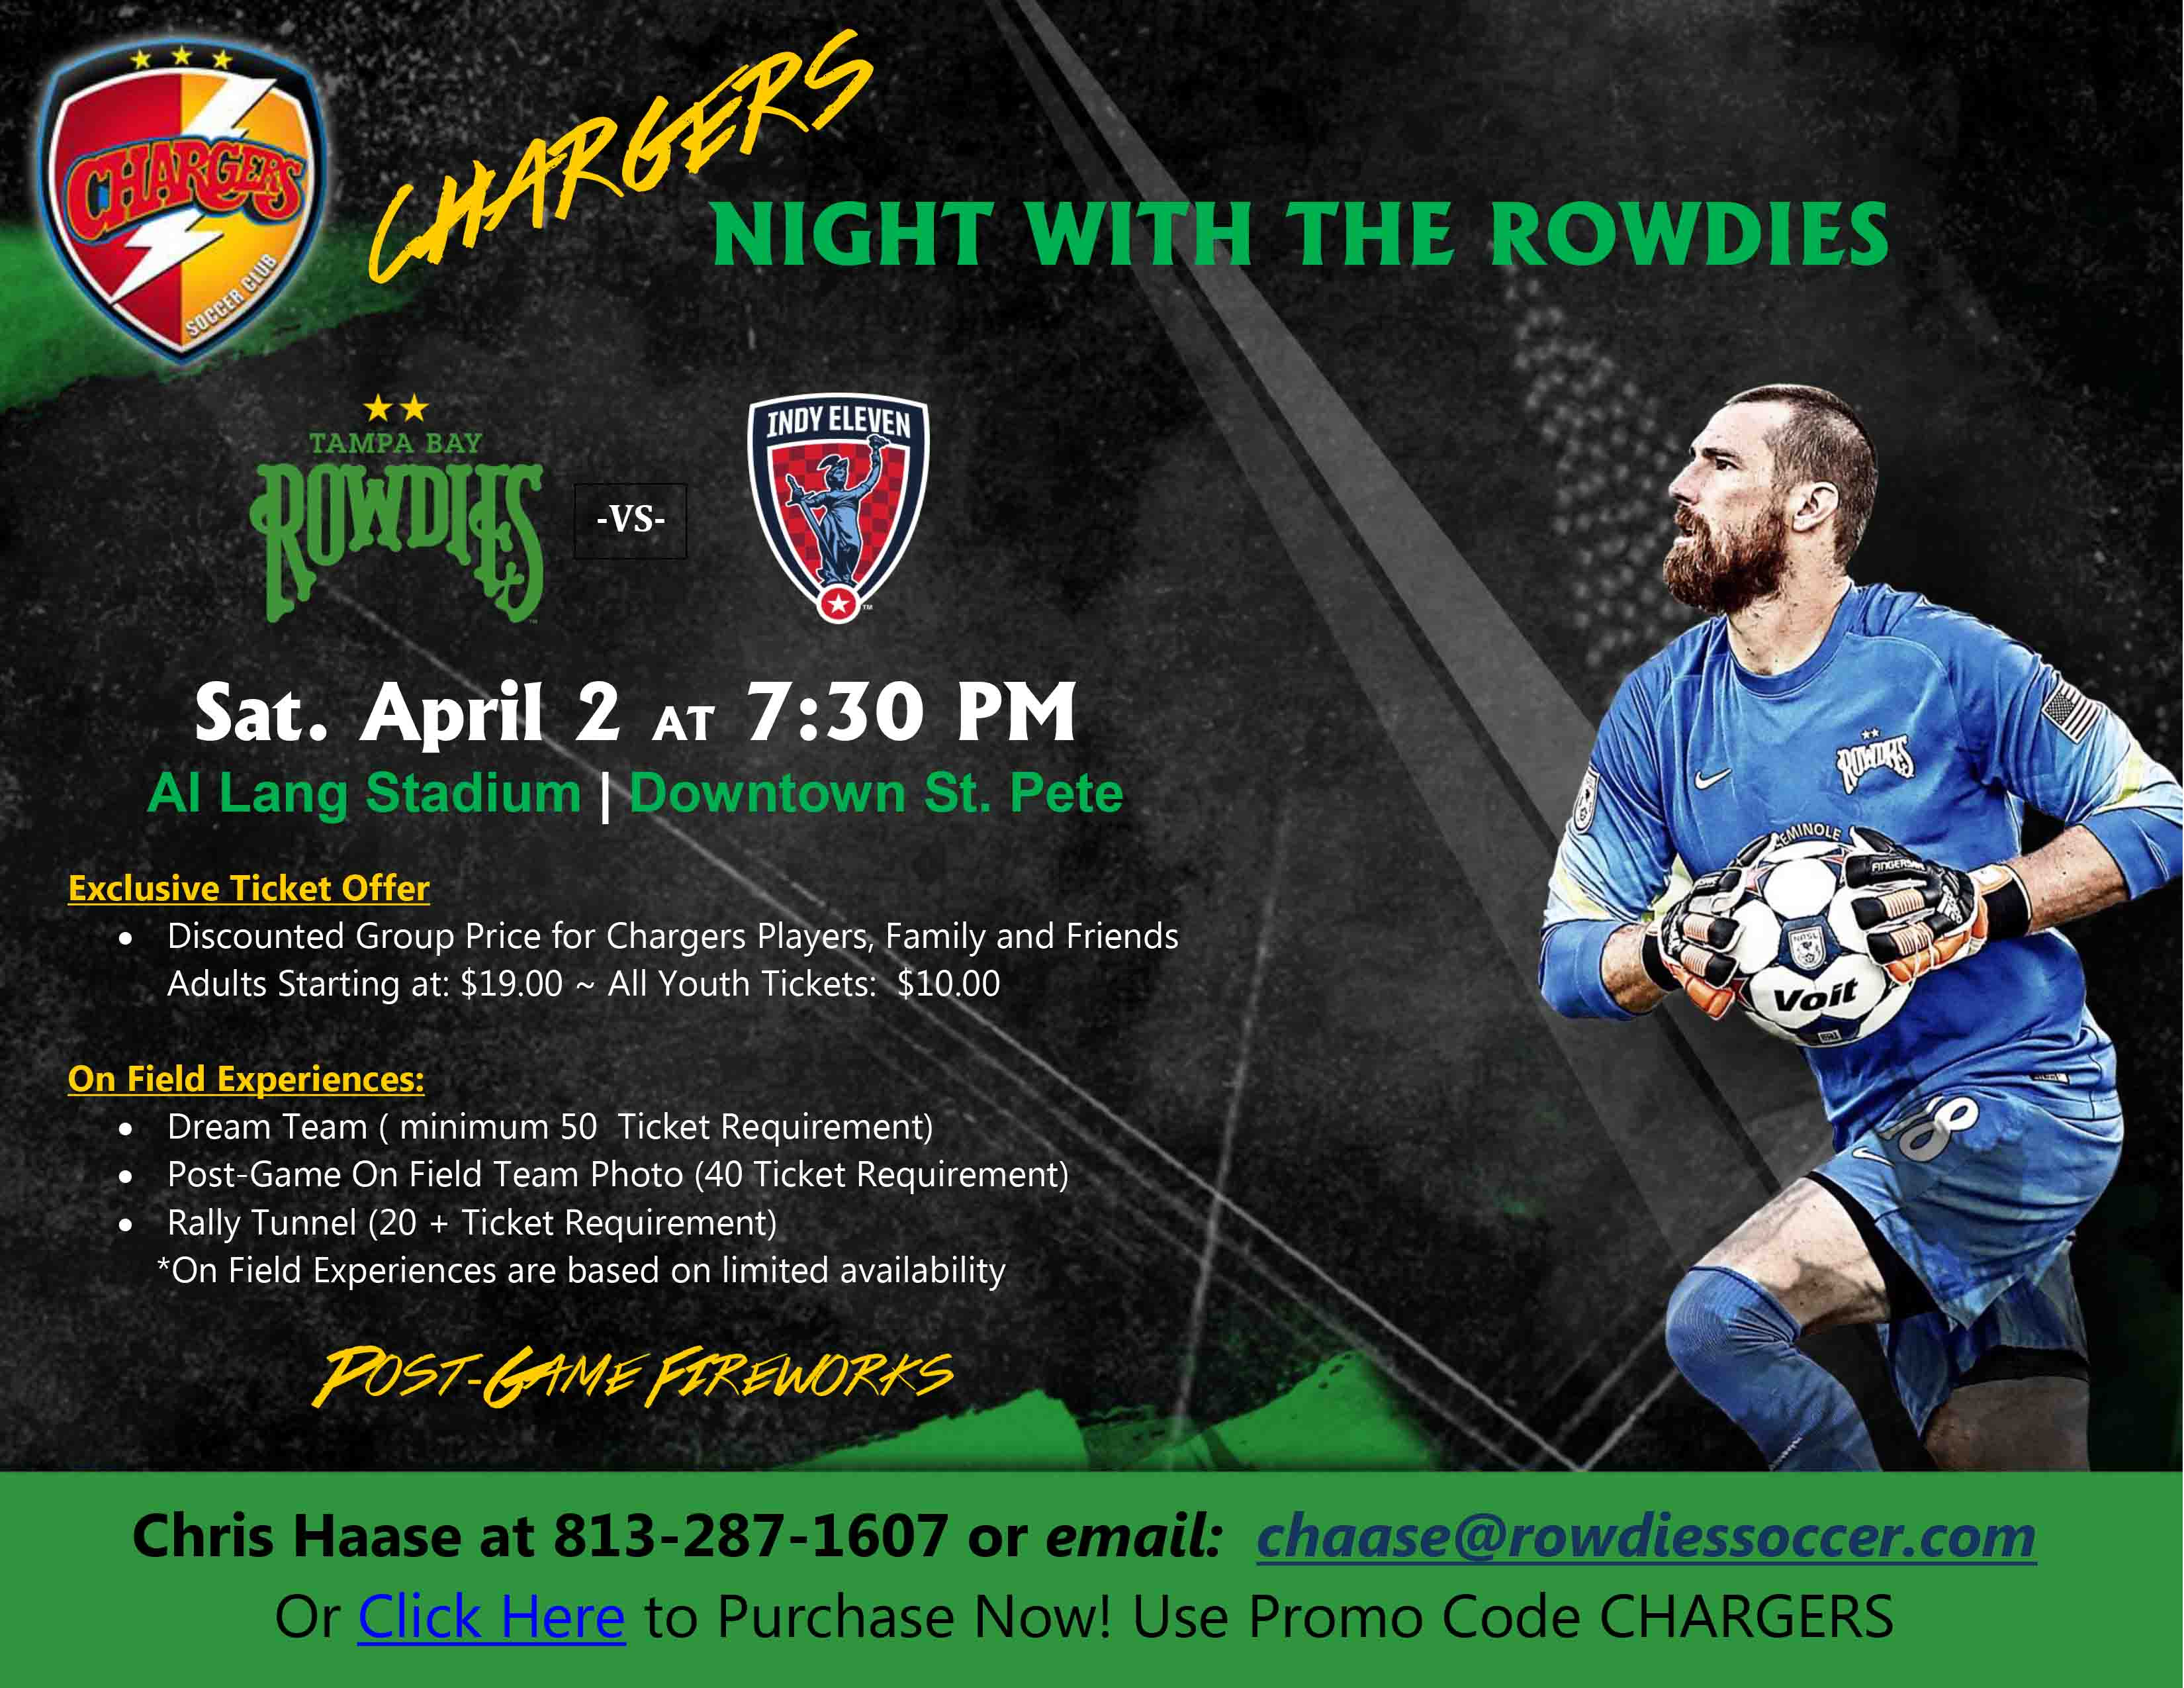 Rowdies Tickets